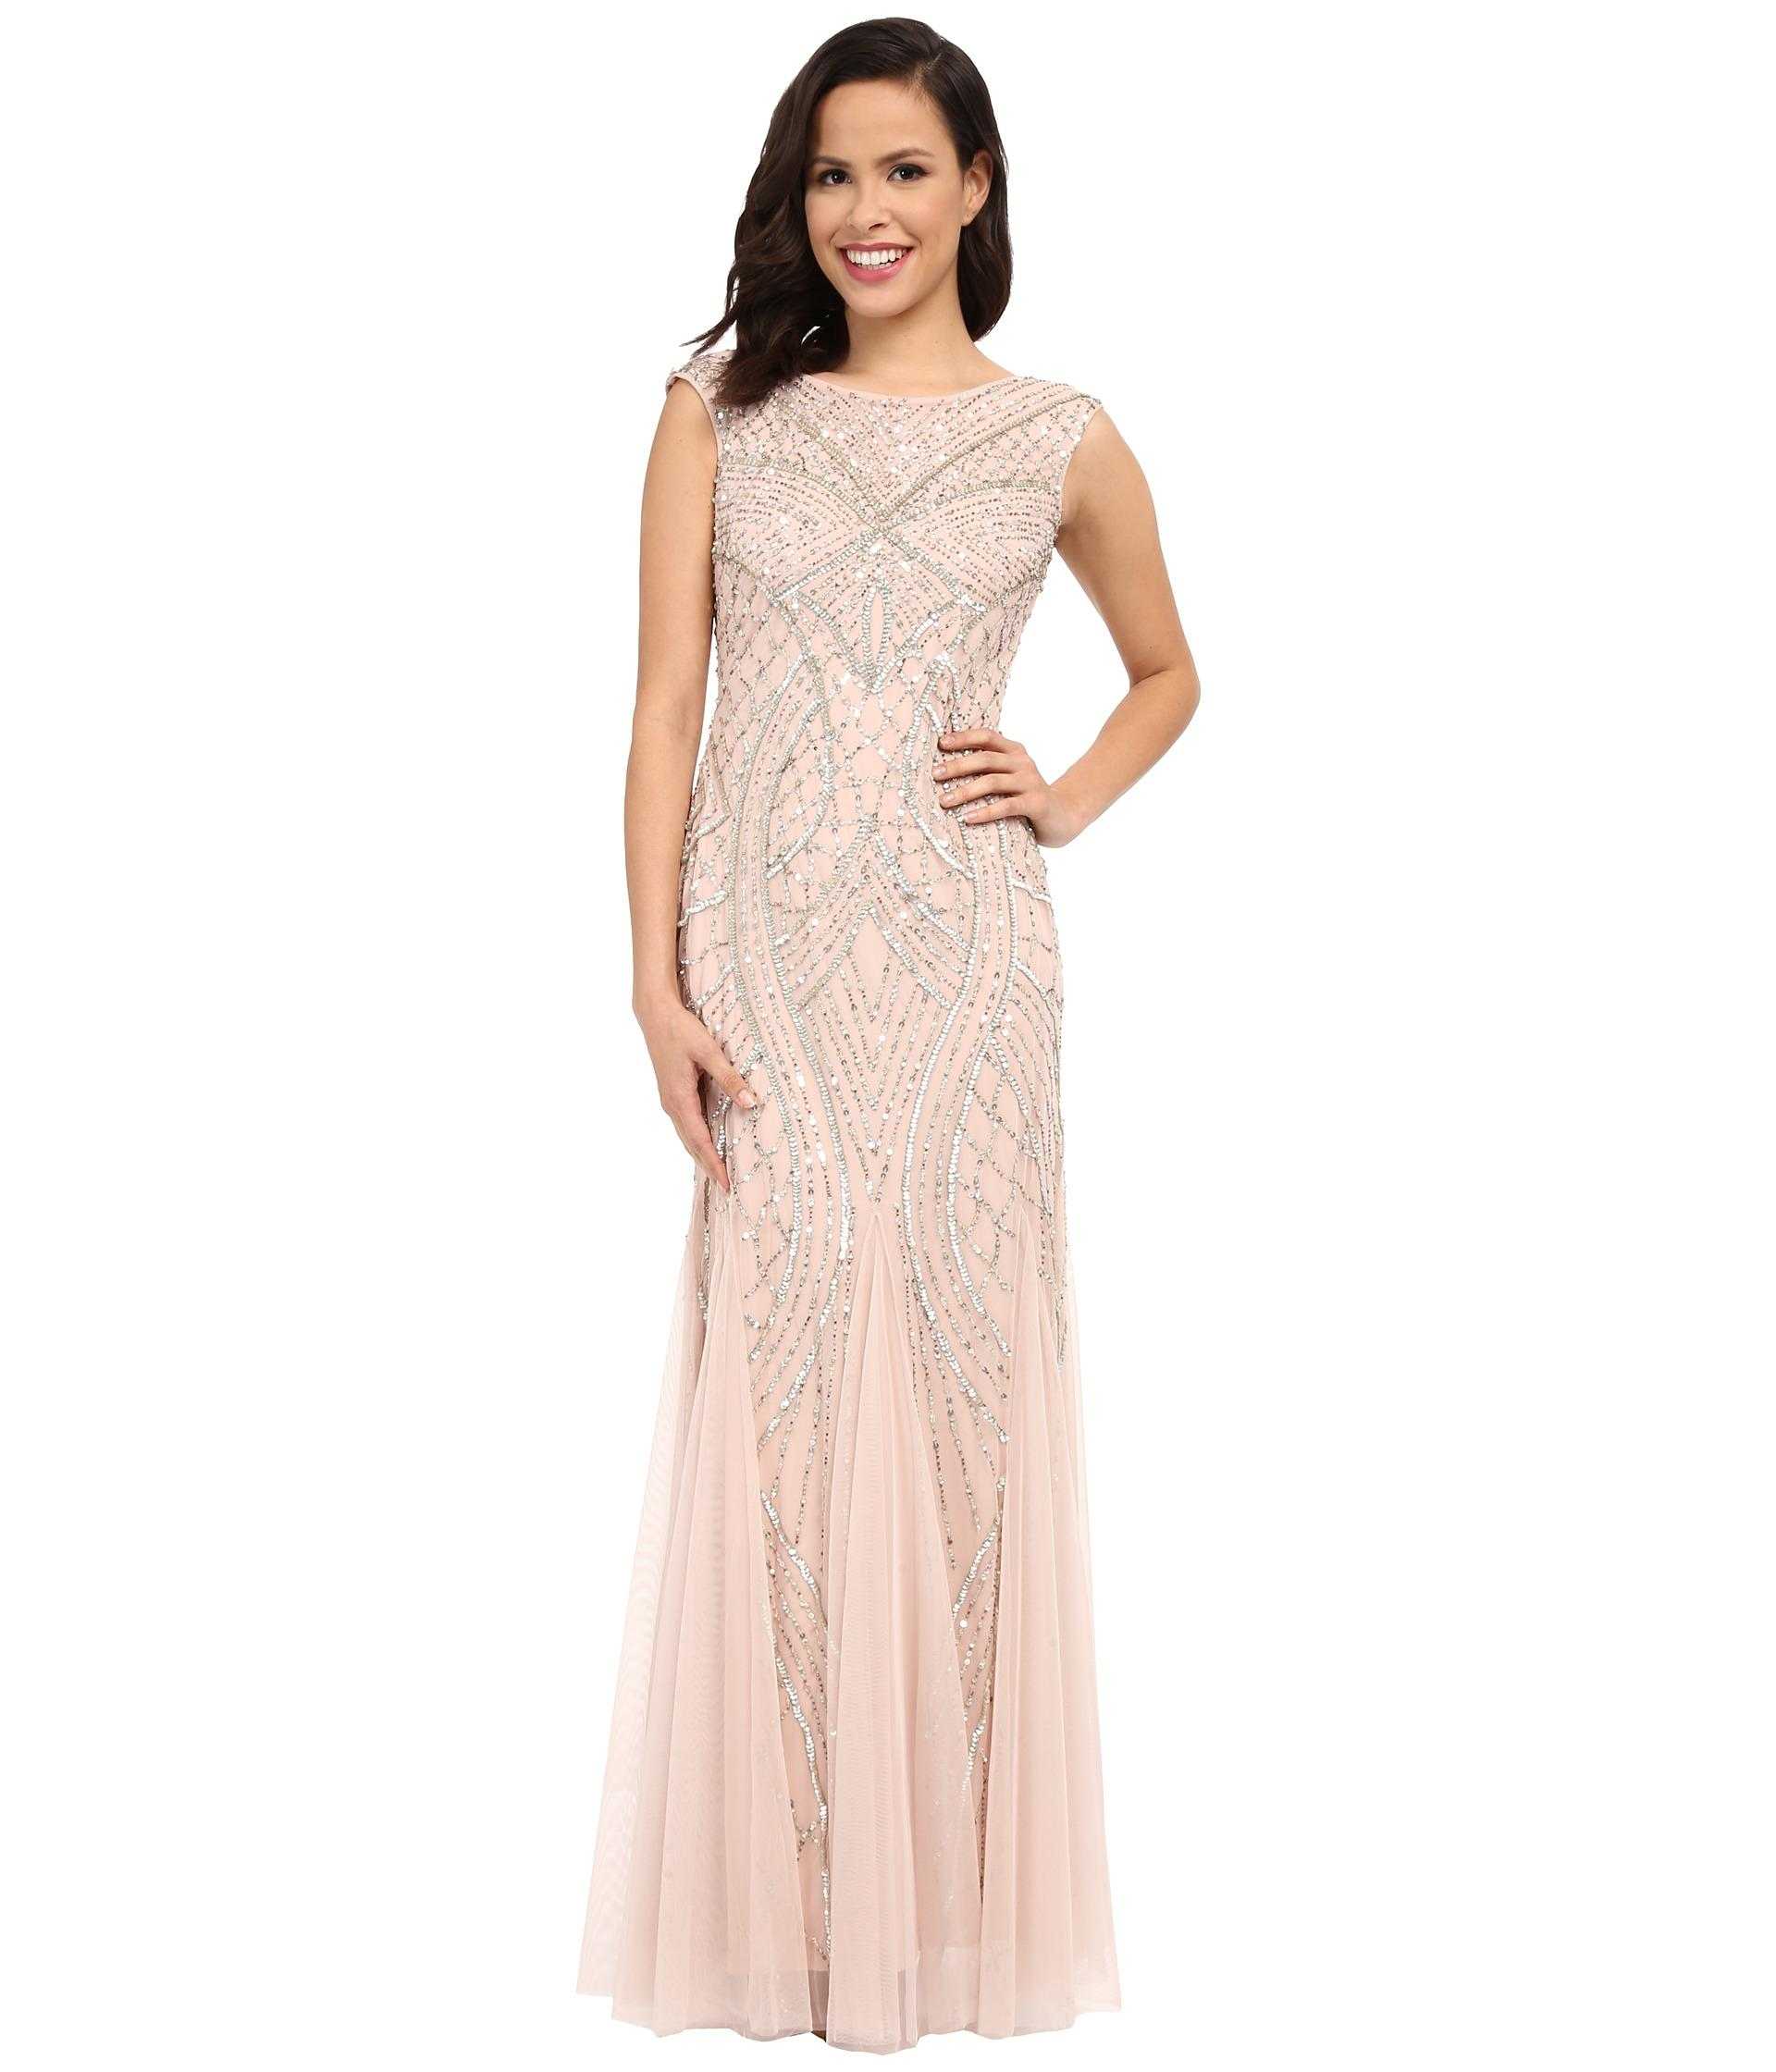 Pay Shell Credit Card >> Adrianna Papell Blush Pink Long Beaded Gown With Godets Dress - 35% Off Retail